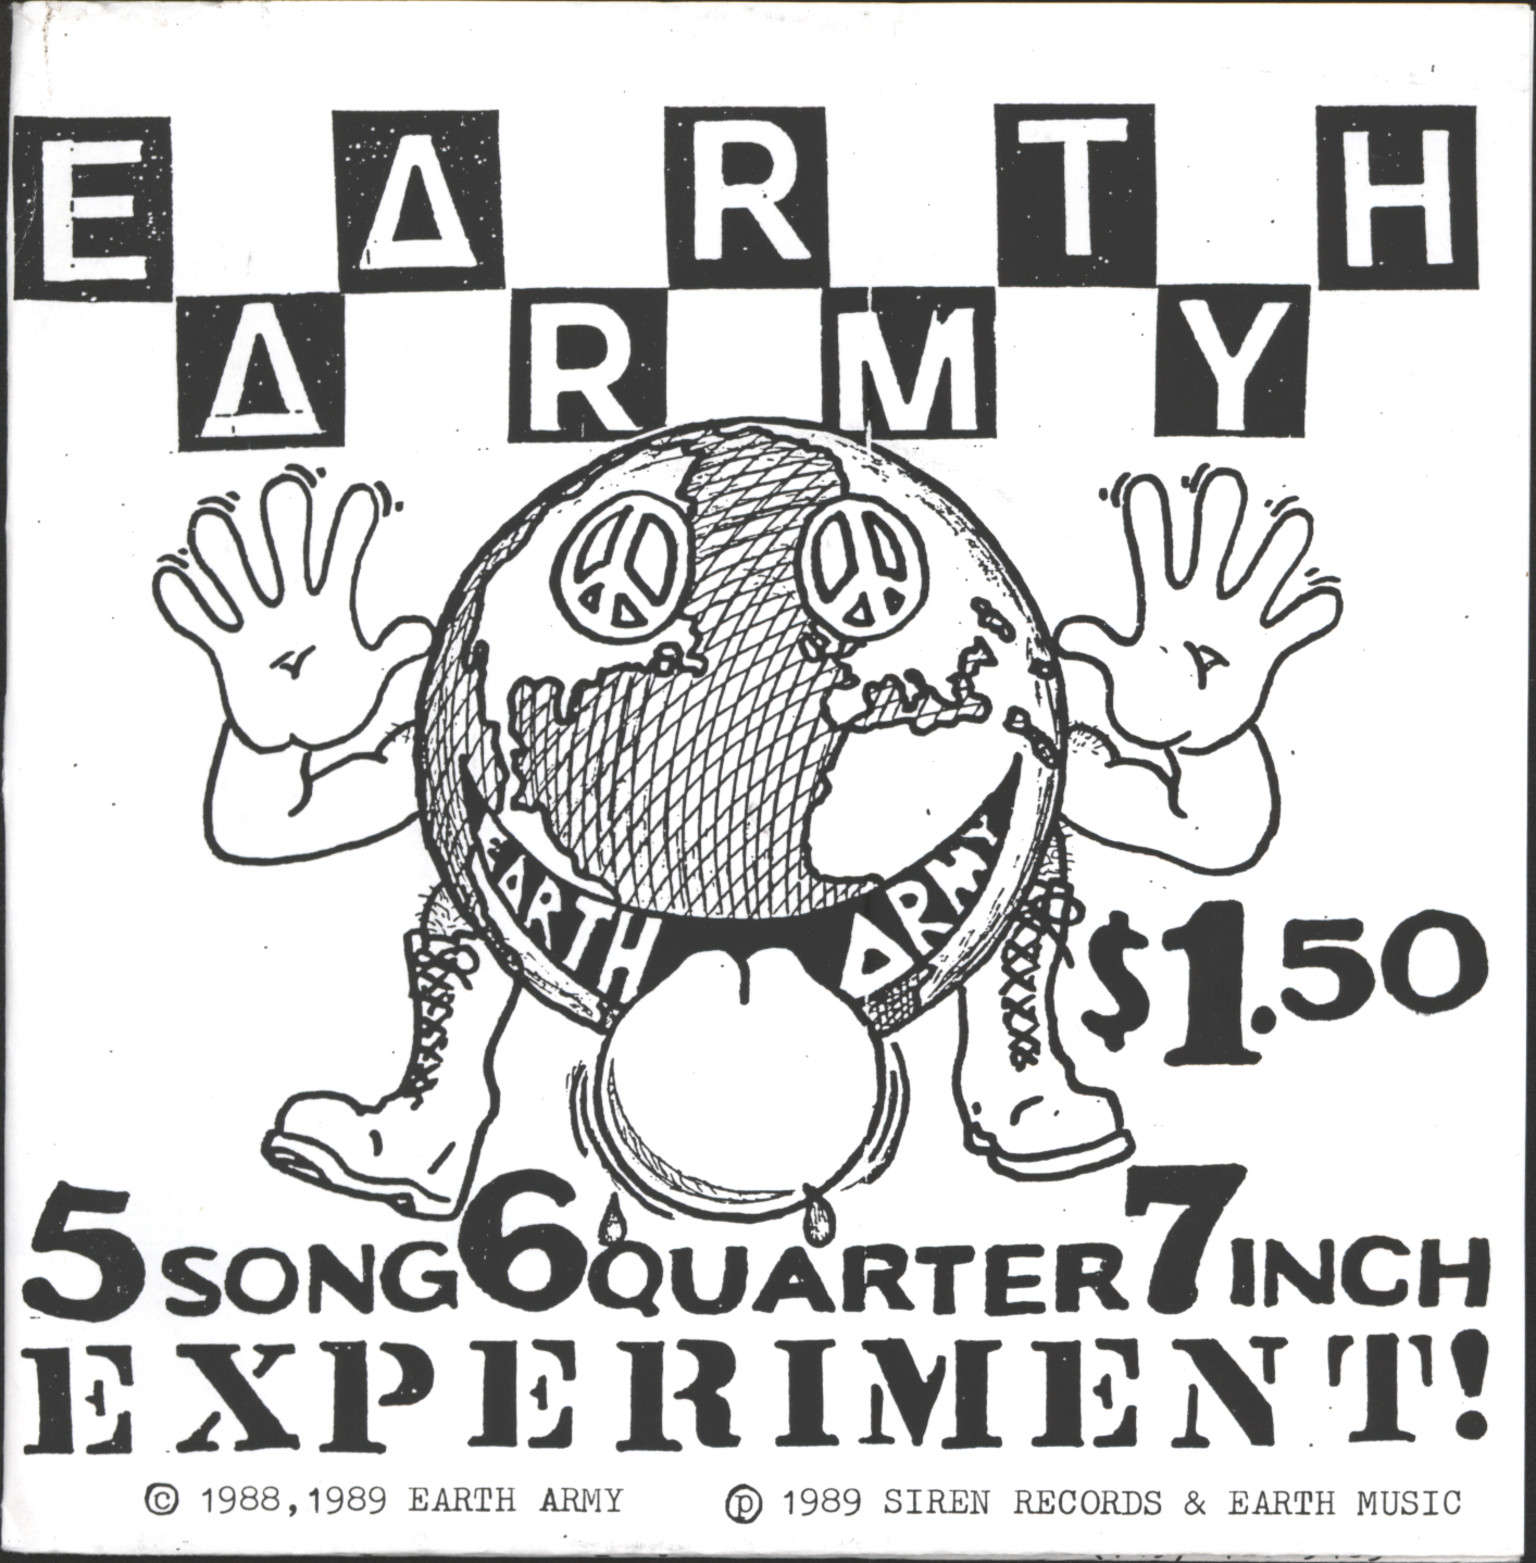 "Earth Army: 5 Song 6 Quarter 7 Inch Experiment, 7"" Single (Vinyl)"